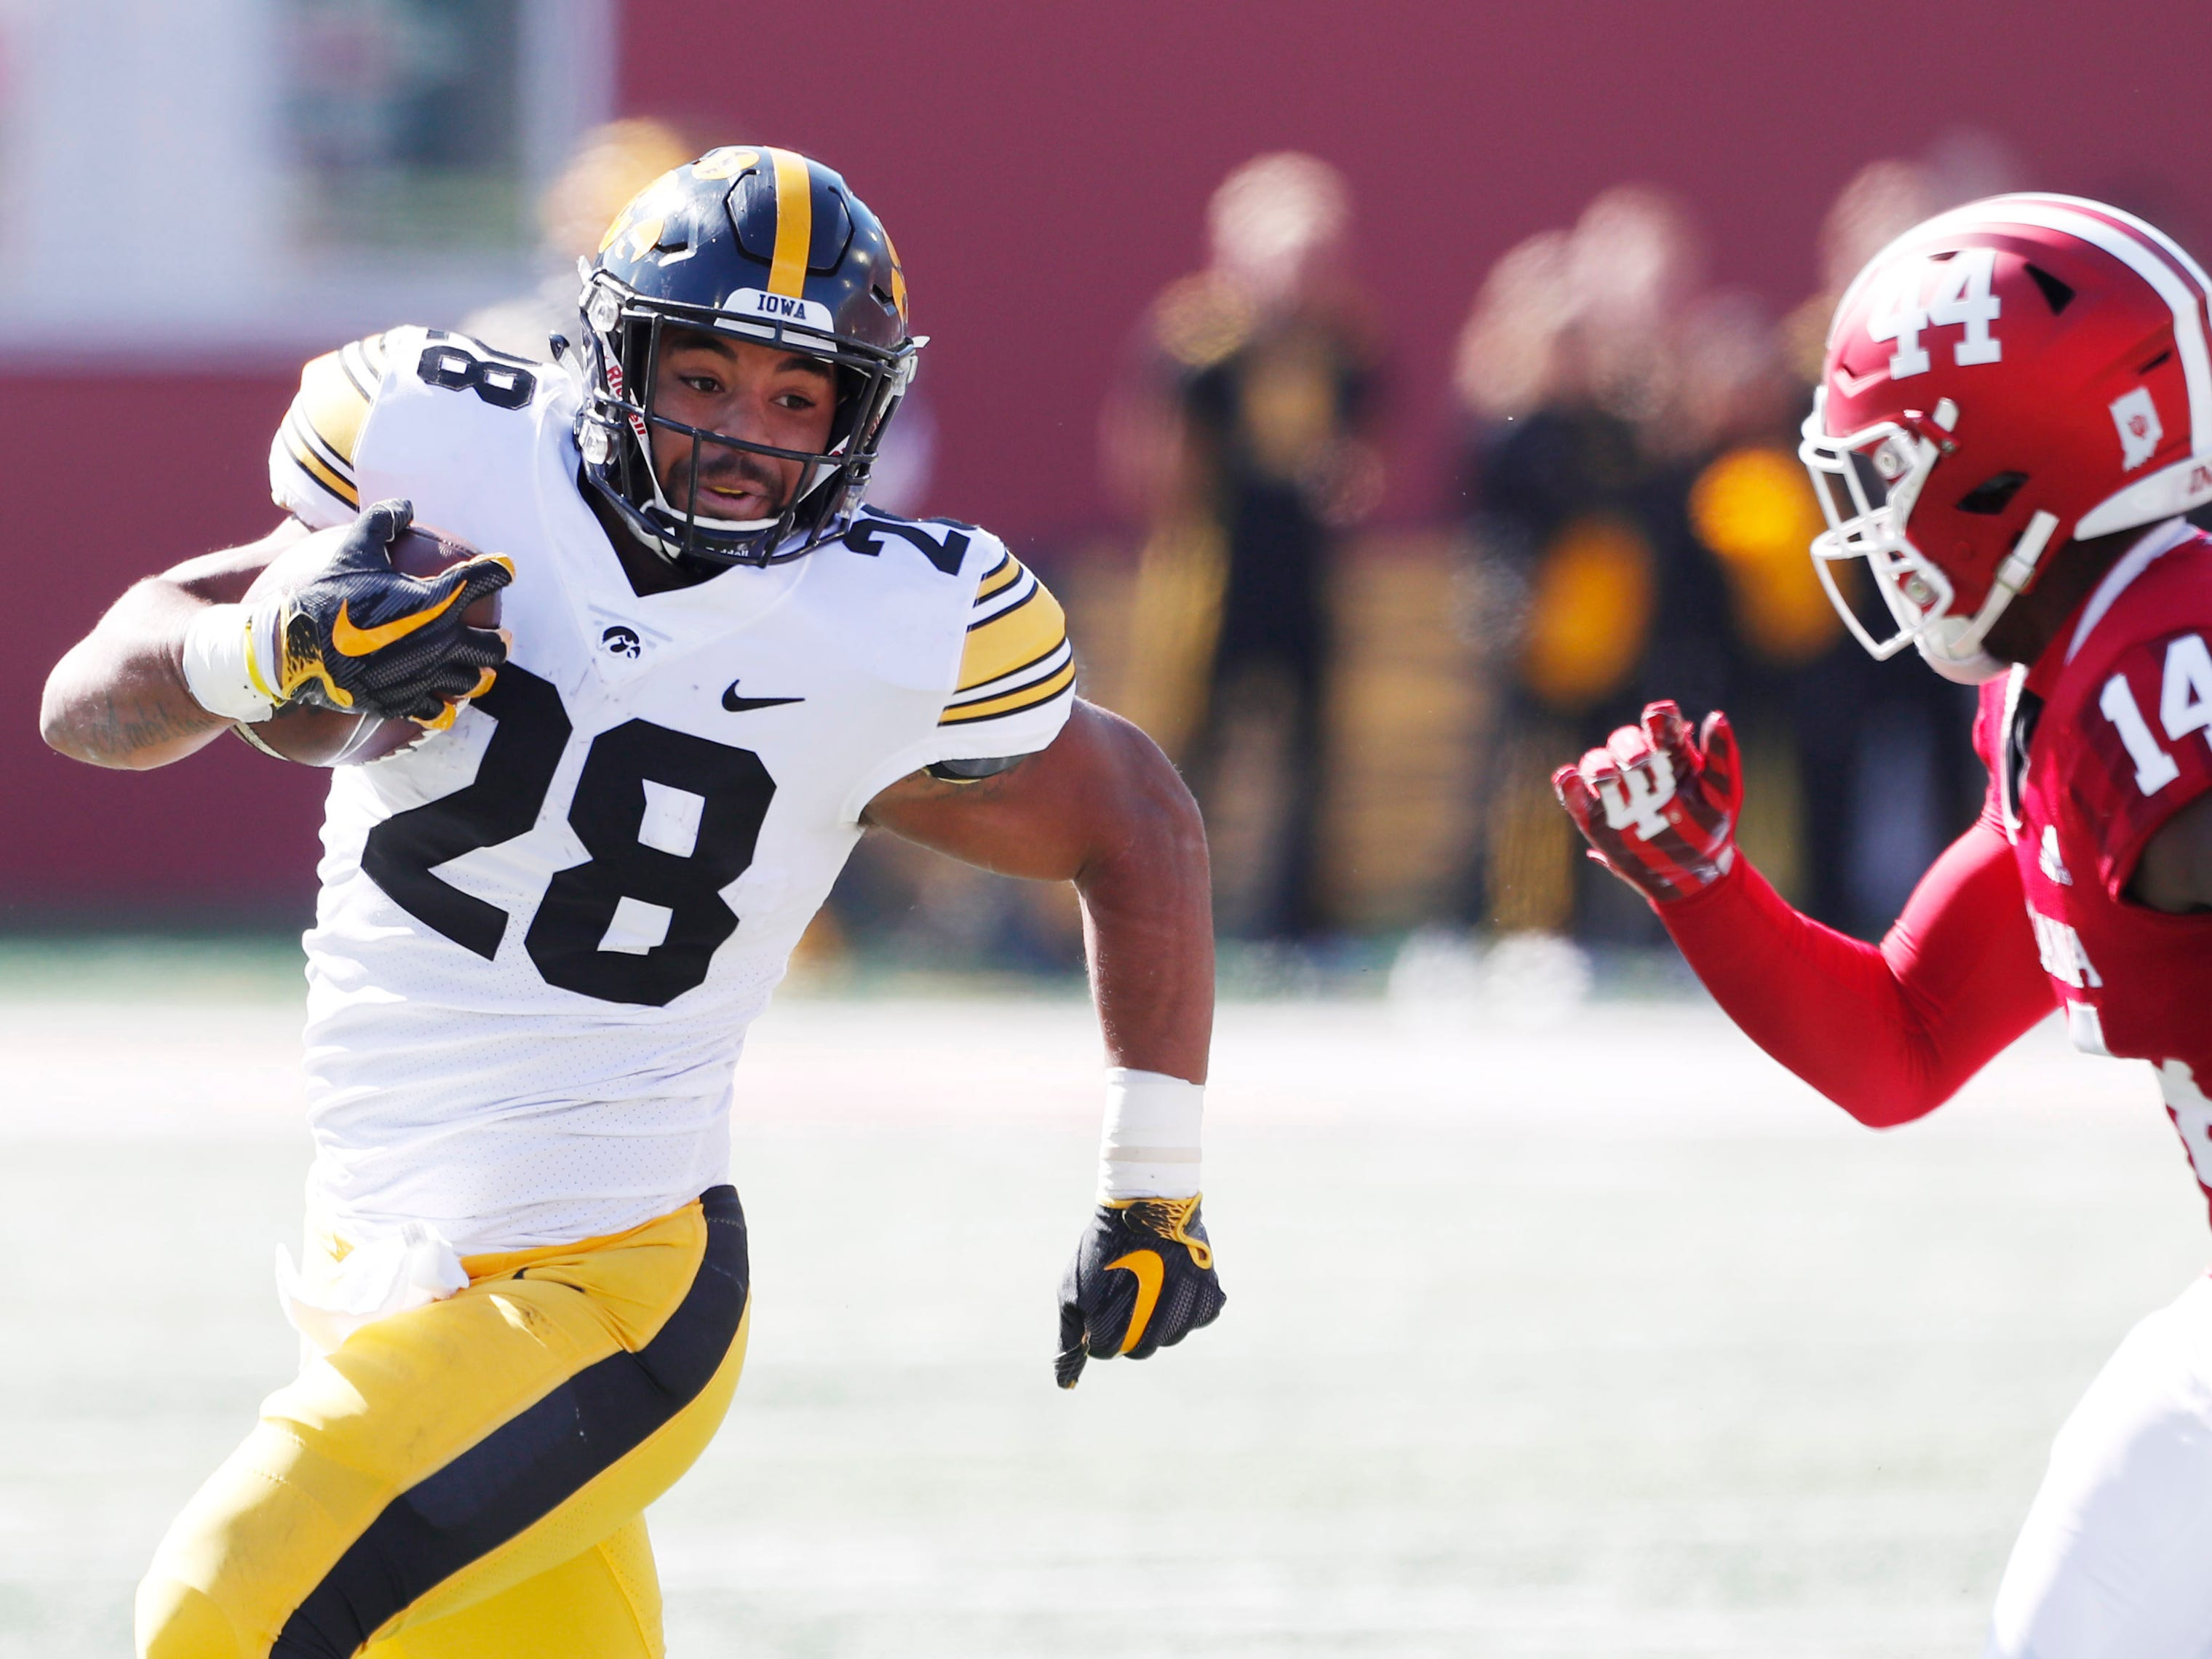 Iowa Hawkeyes running back Toren Young (28) runs with the ball against Indiana Hoosiers defensive back Andre Brown Jr. (14) during the first quarter at Memorial Stadium .